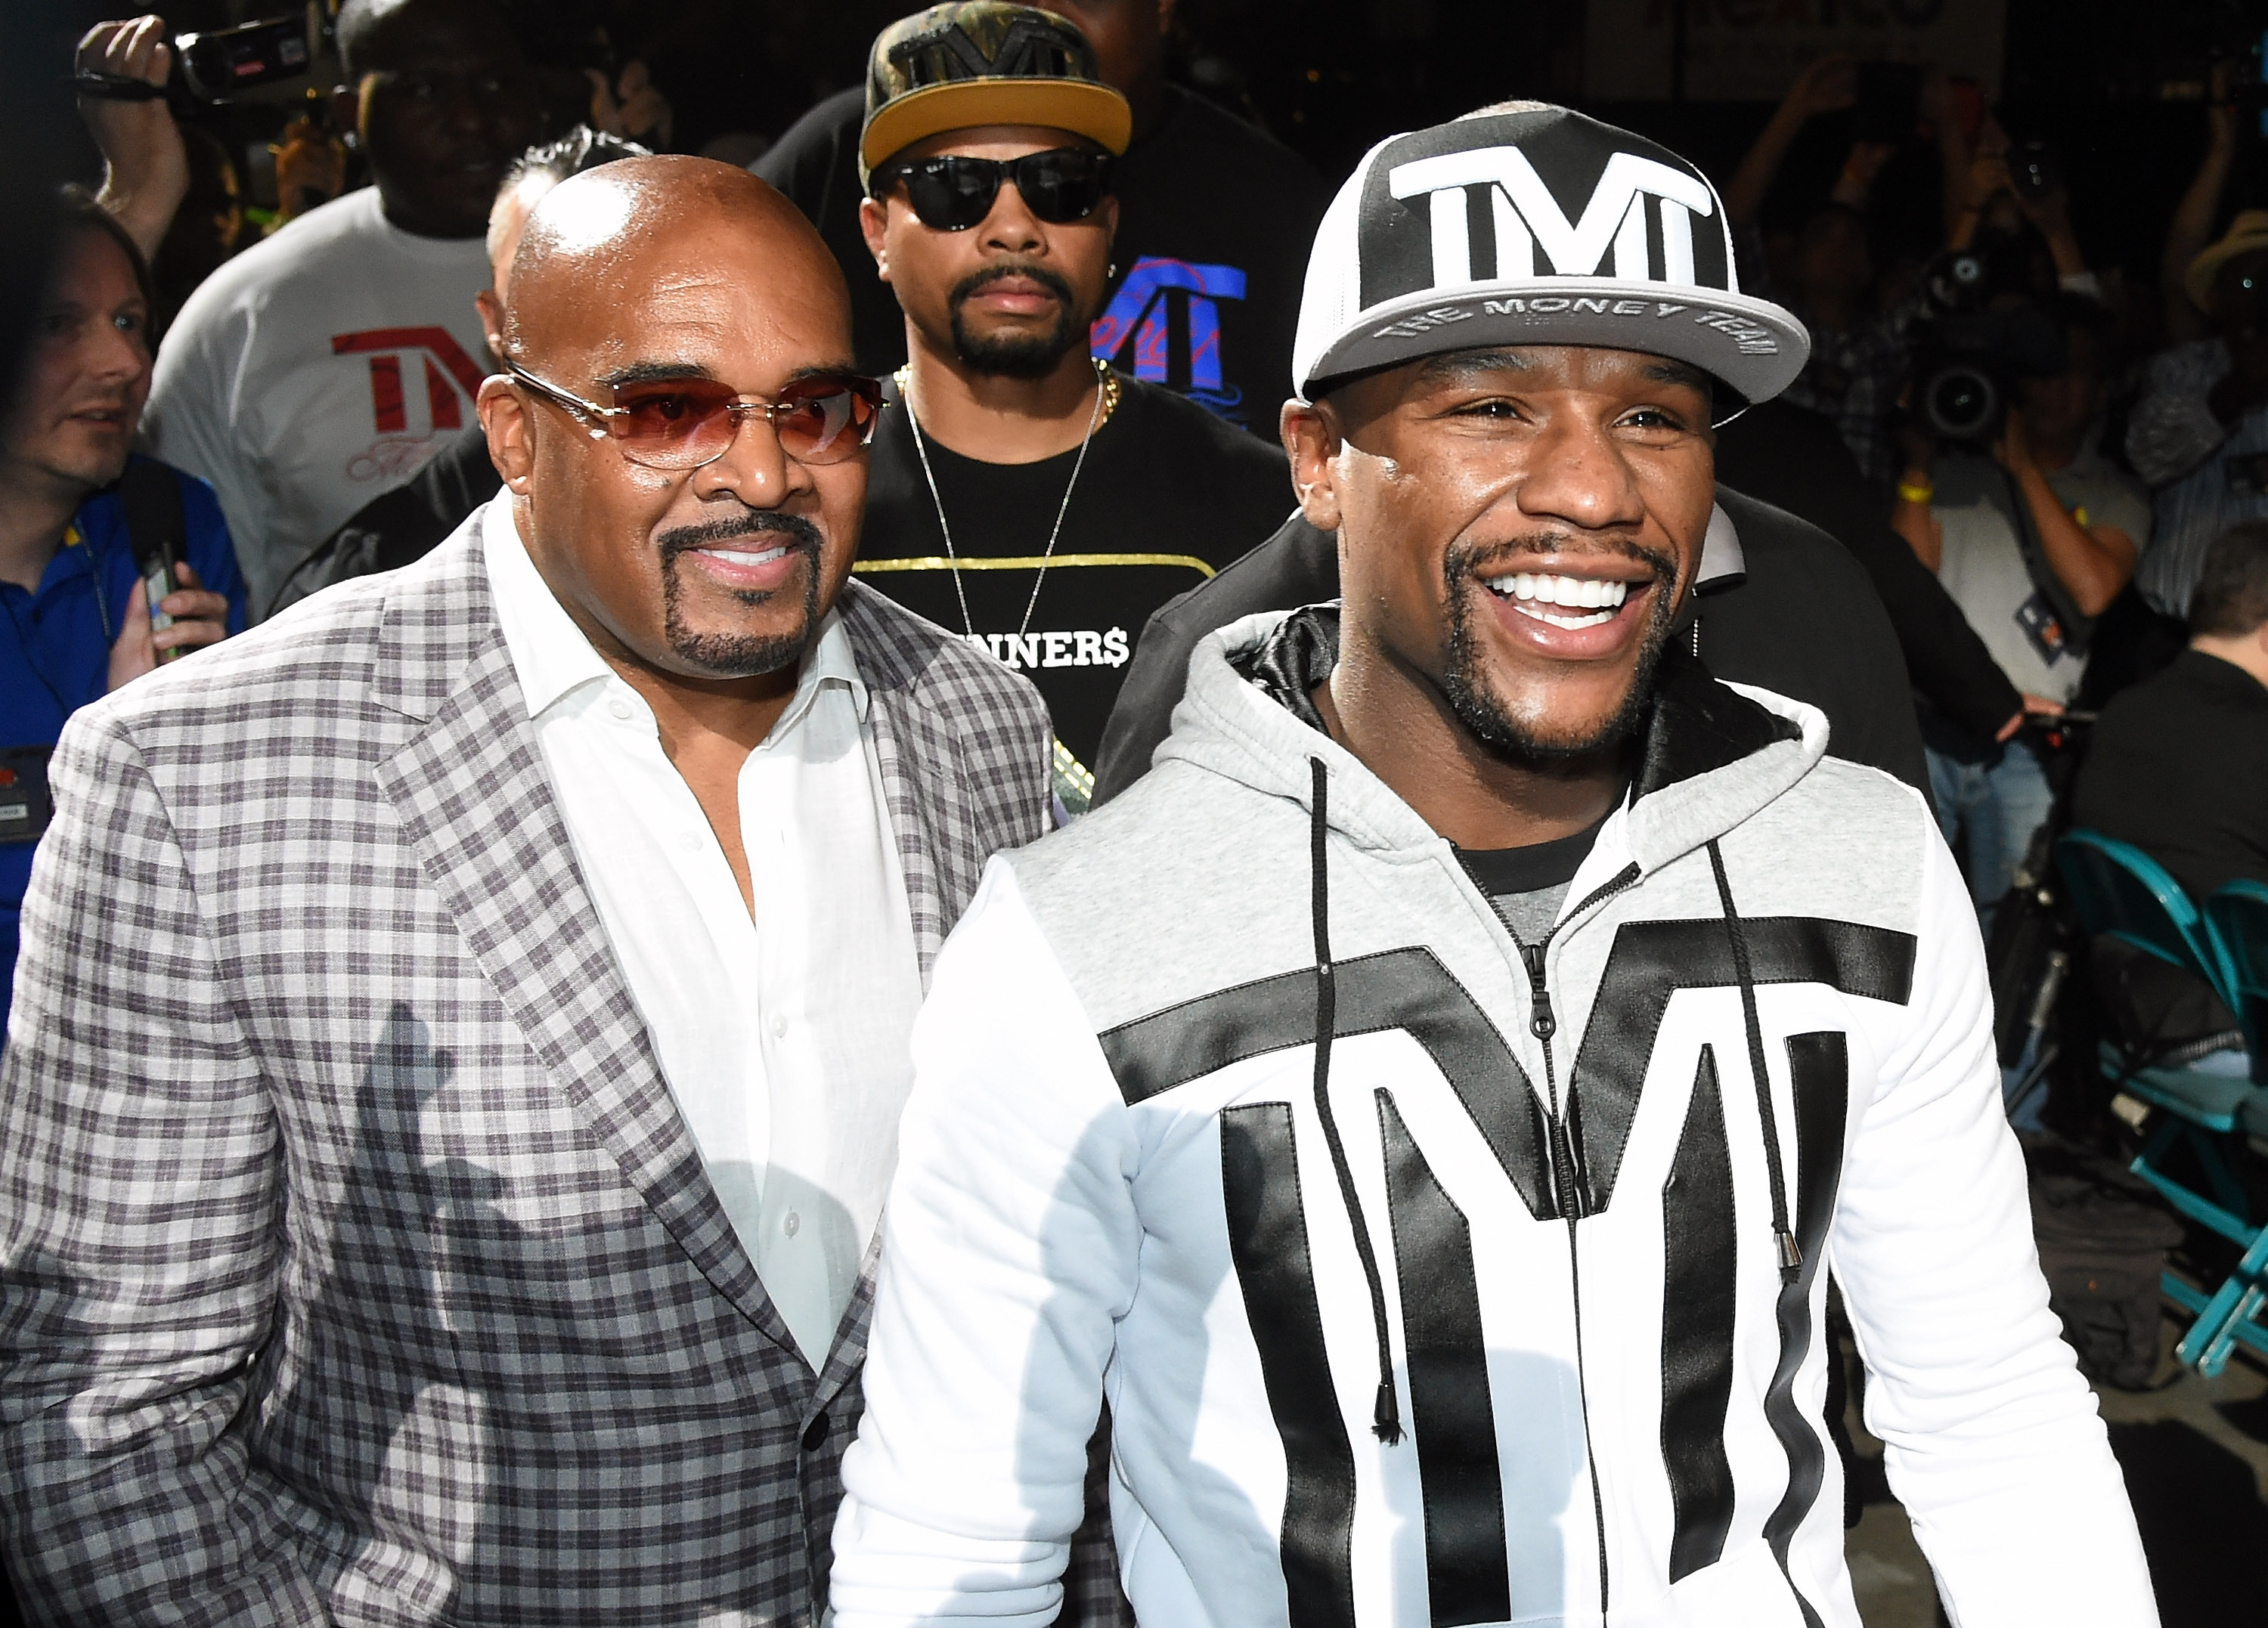 Floyd Mayweather Jr. v Manny Pacquiao - Mayweather Arrival